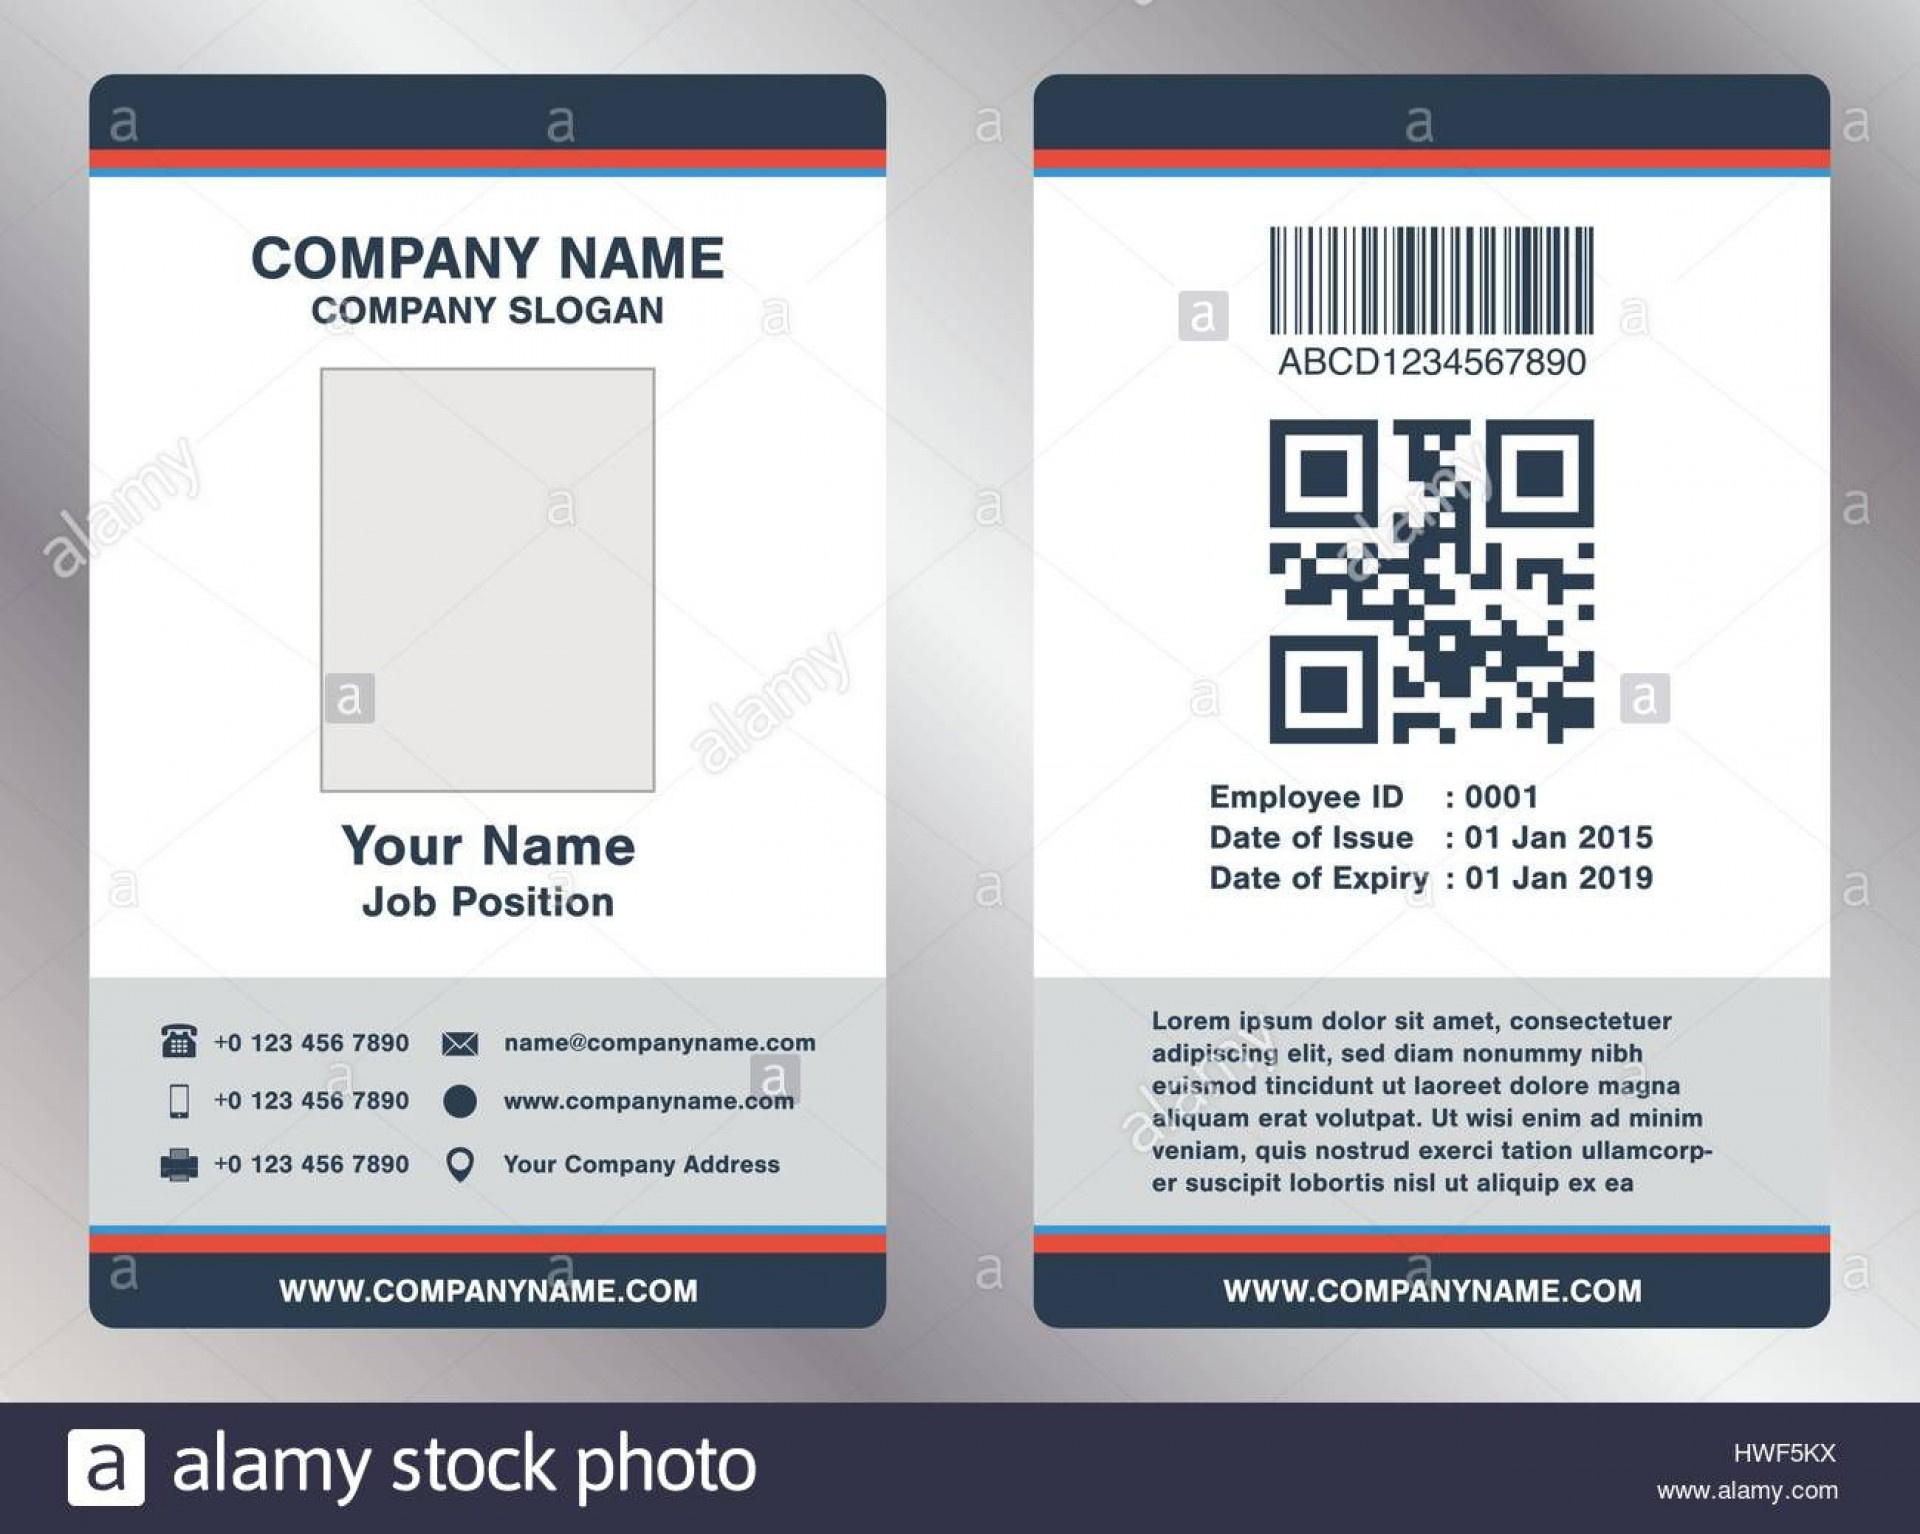 008 Astounding Employee Id Badge Template Picture  Avery Card Free Download Word1920